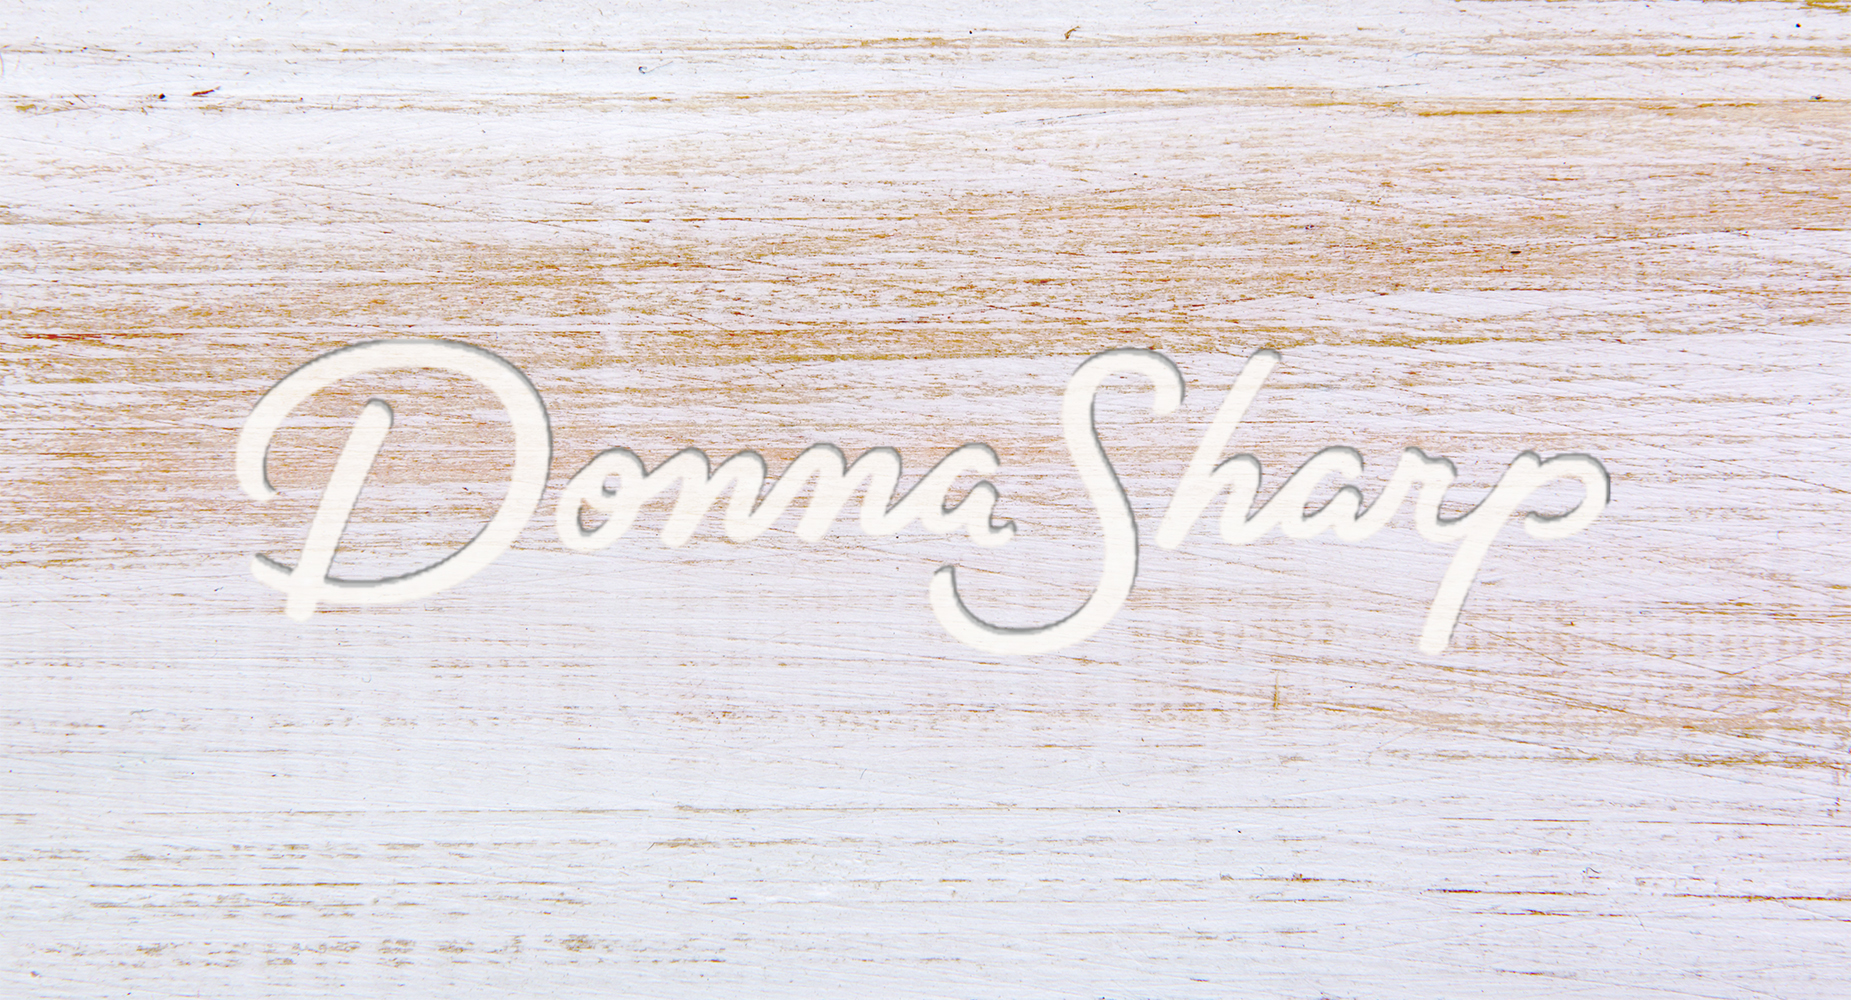 Donna-Sharp-Signage-Etched.jpg